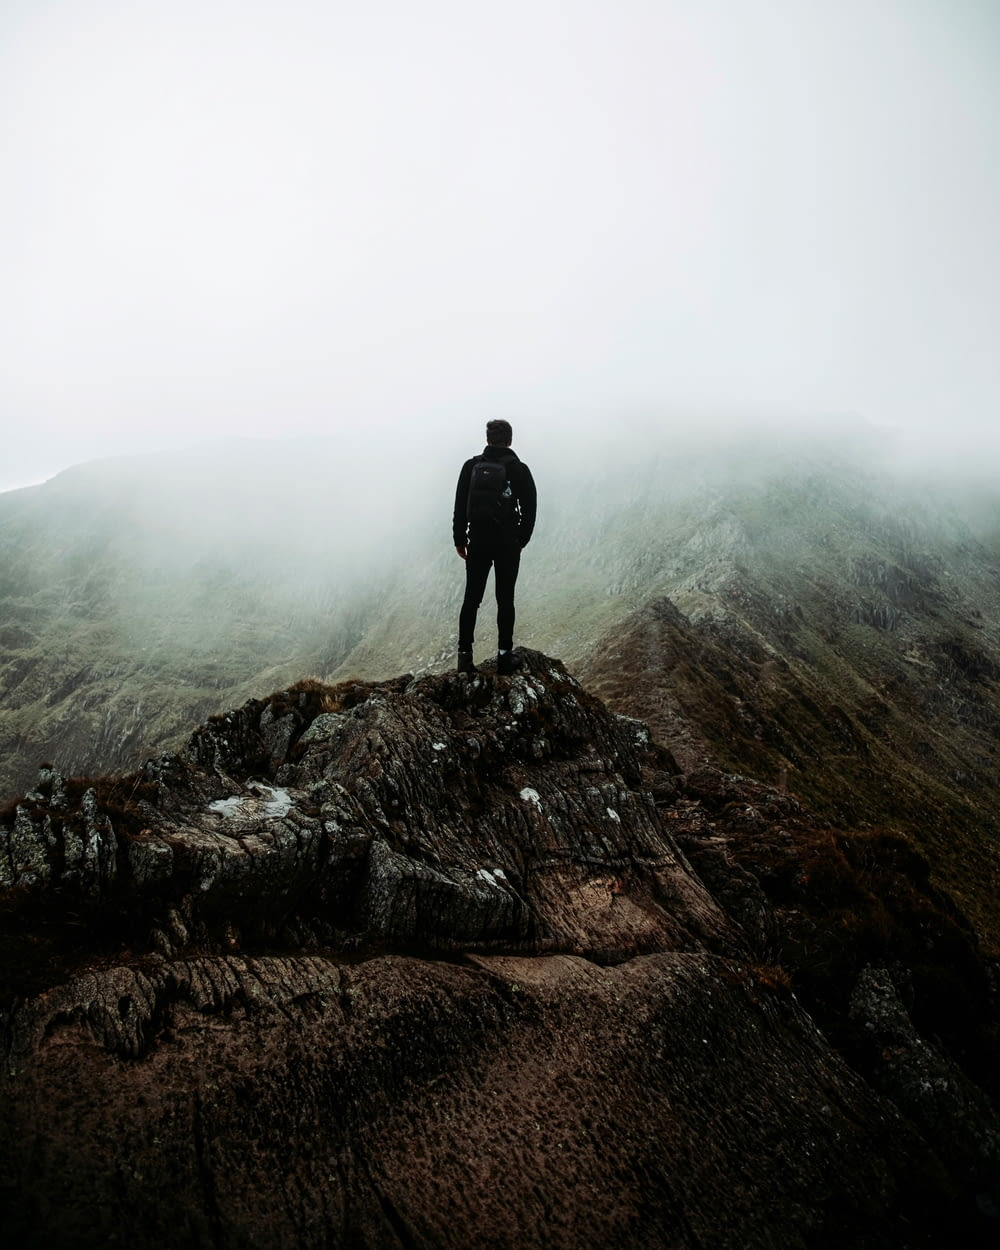 man in black jacket standing on brown rock formation during foggy weather